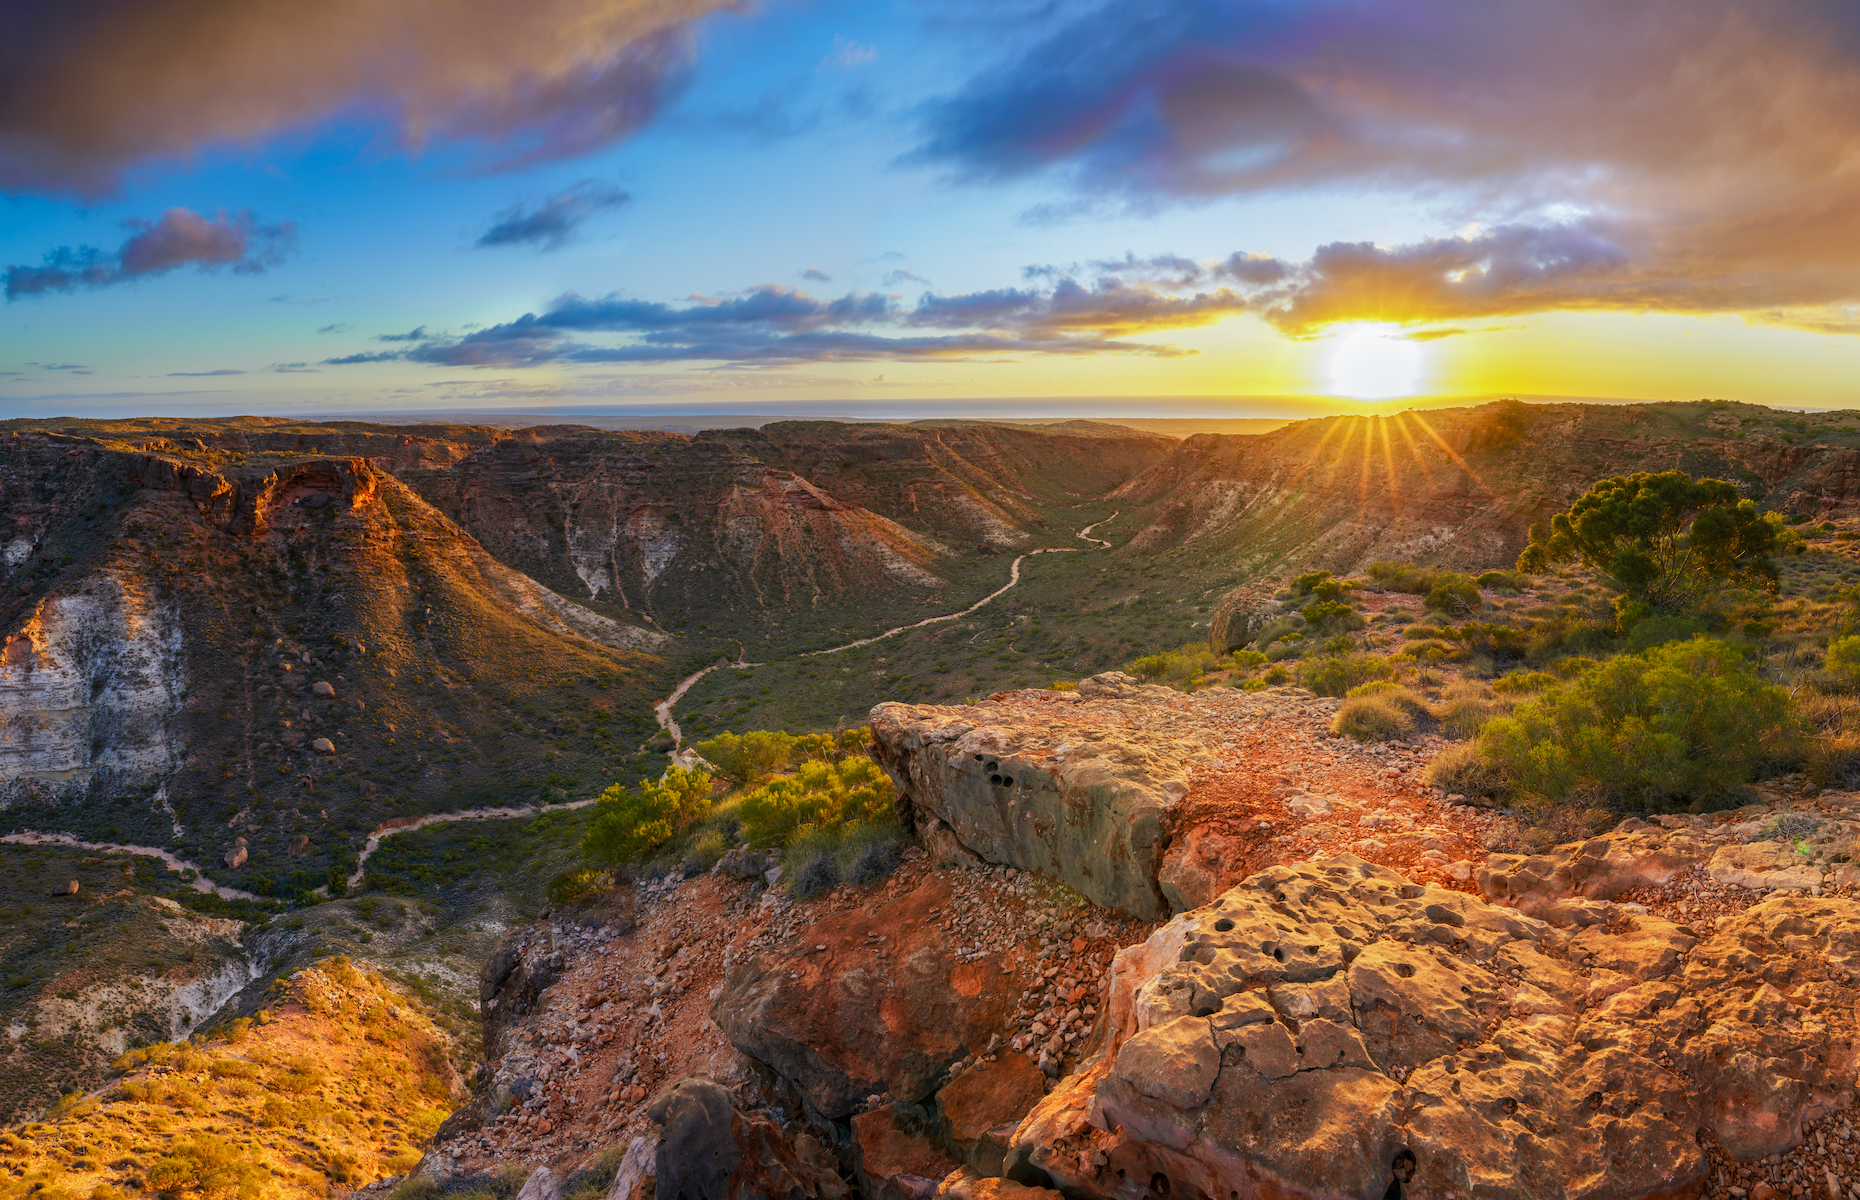 Slide 6 of 21: Trek up the Charles Knife Road in Cape Range National Park for an incredible sunrise view of the surrounding gorges and ranges, like the Charles Knife Canyon seen here. The Exmouth Gulf next door also boasts extensive ecosystems and reefs.